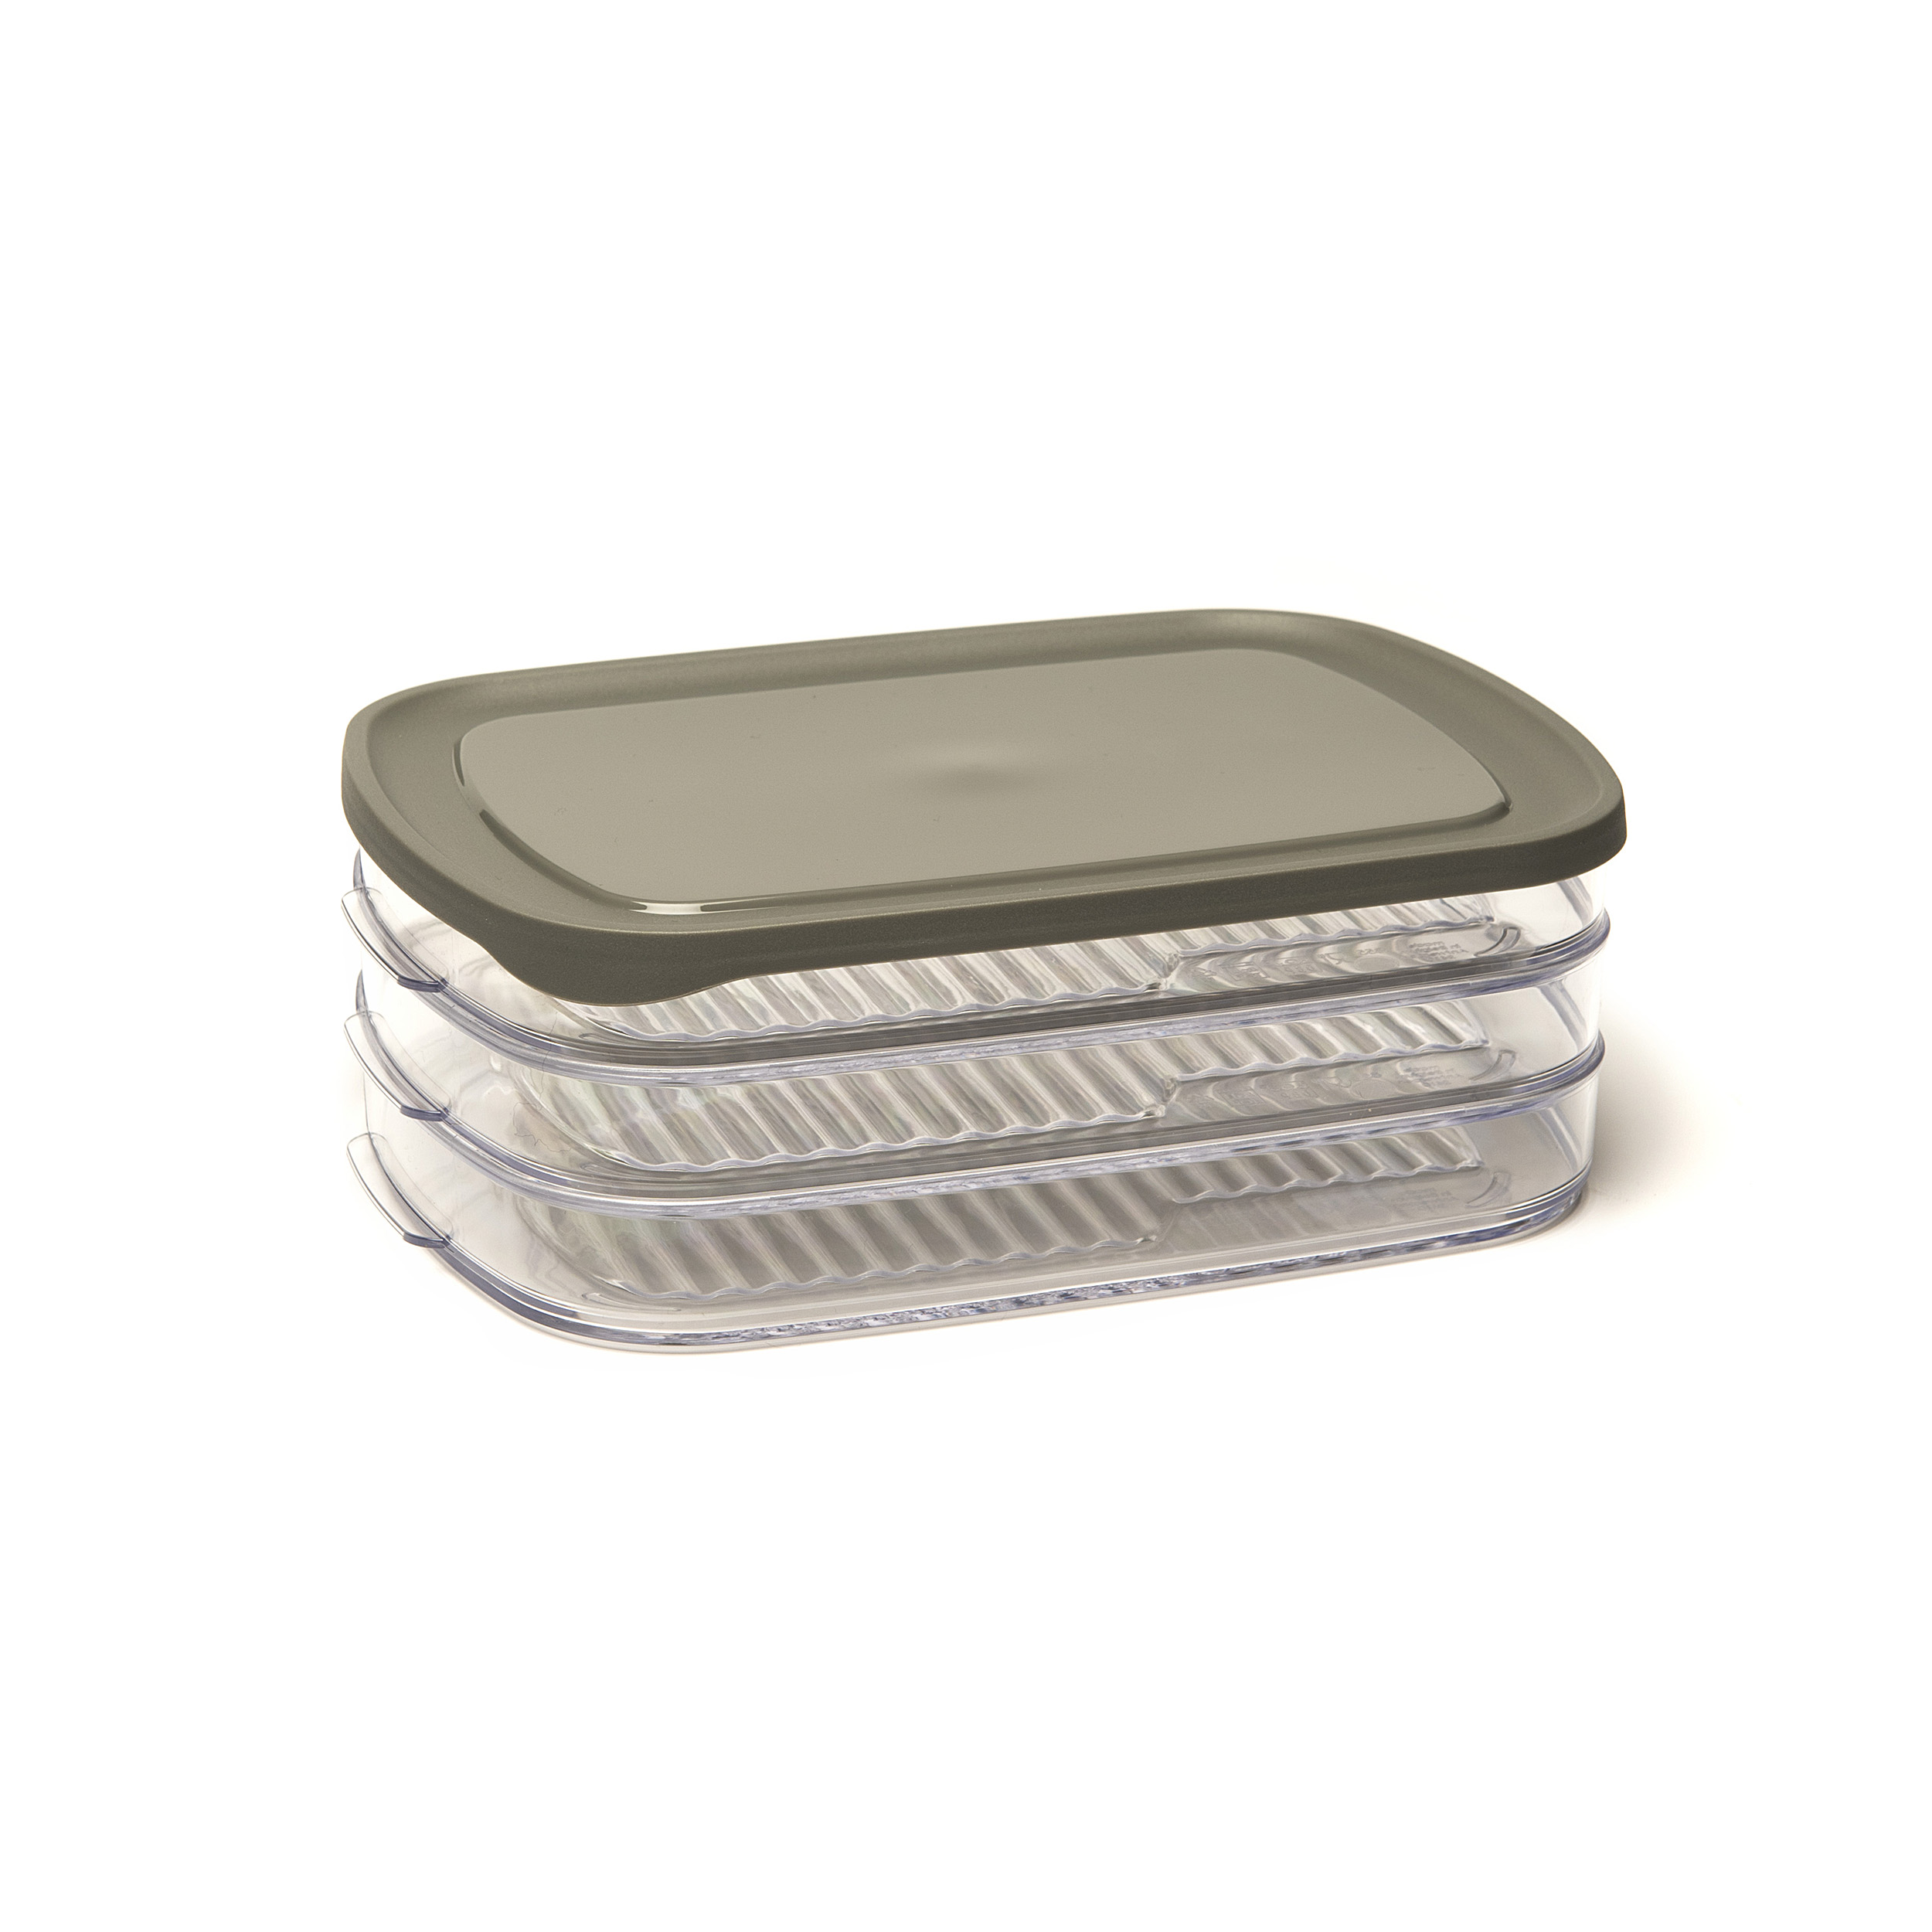 Meatbox - .... This storage box is ideal for storing cold meats. The ribbed design prevents condensation and the trays are easily stacked. Looking for the right compartment is a thing of the past: thanks to the transparent material you will soon find what you are looking for. .. Cette boîte de conservation est idéale pour conserver des charcuteries fines. Les arêtes empêchent la condensation et les plateaux s'empilent facilement. Fini de devoir chercher le bon compartiment : le matériau transparent vous met vite sur la voie. .. Deze bewaardoos is ideaal om fijne vleeswaren in te bewaren. De ribben voorkomen condens en de trays zijn gemakkelijk stapelbaar. Gedaan met zoeken naar het juiste compartiment: het doorzichtige materiaal brengt je snel op het juiste spoor. .. Dieser Aufbewahrungsbehälter ist ideal für frische Fleischwaren. Die Rippen verhindern Kondensation und die Trays lassen sich einfach stapeln. Sie müssen nicht mehr nach dem richtigen Fach suchen: Das durchsichtige Material bringt Sie schnell auf die richtige Spur. ....